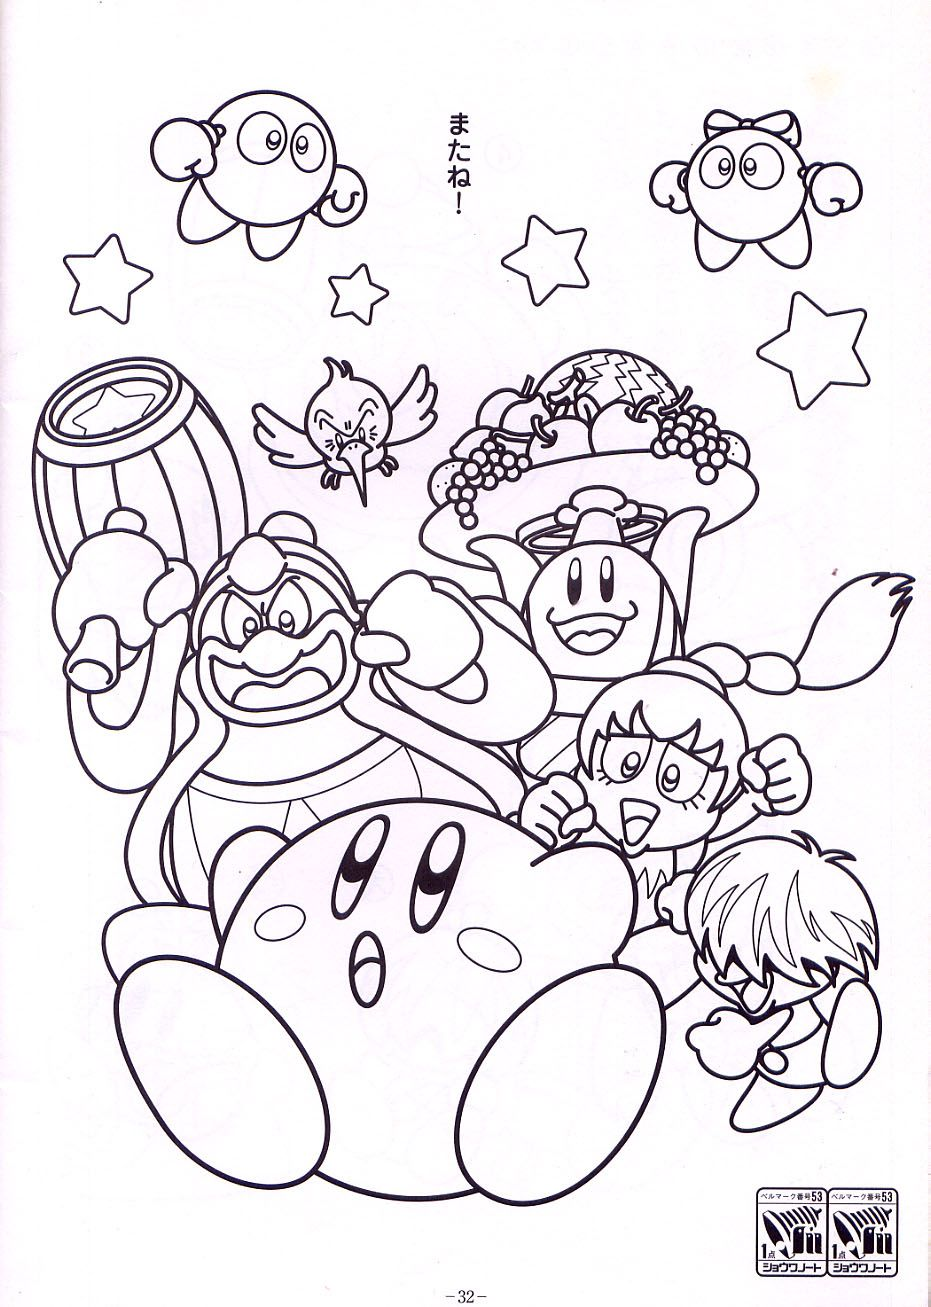 Coloring pages kirby - Kirby Coloring Page